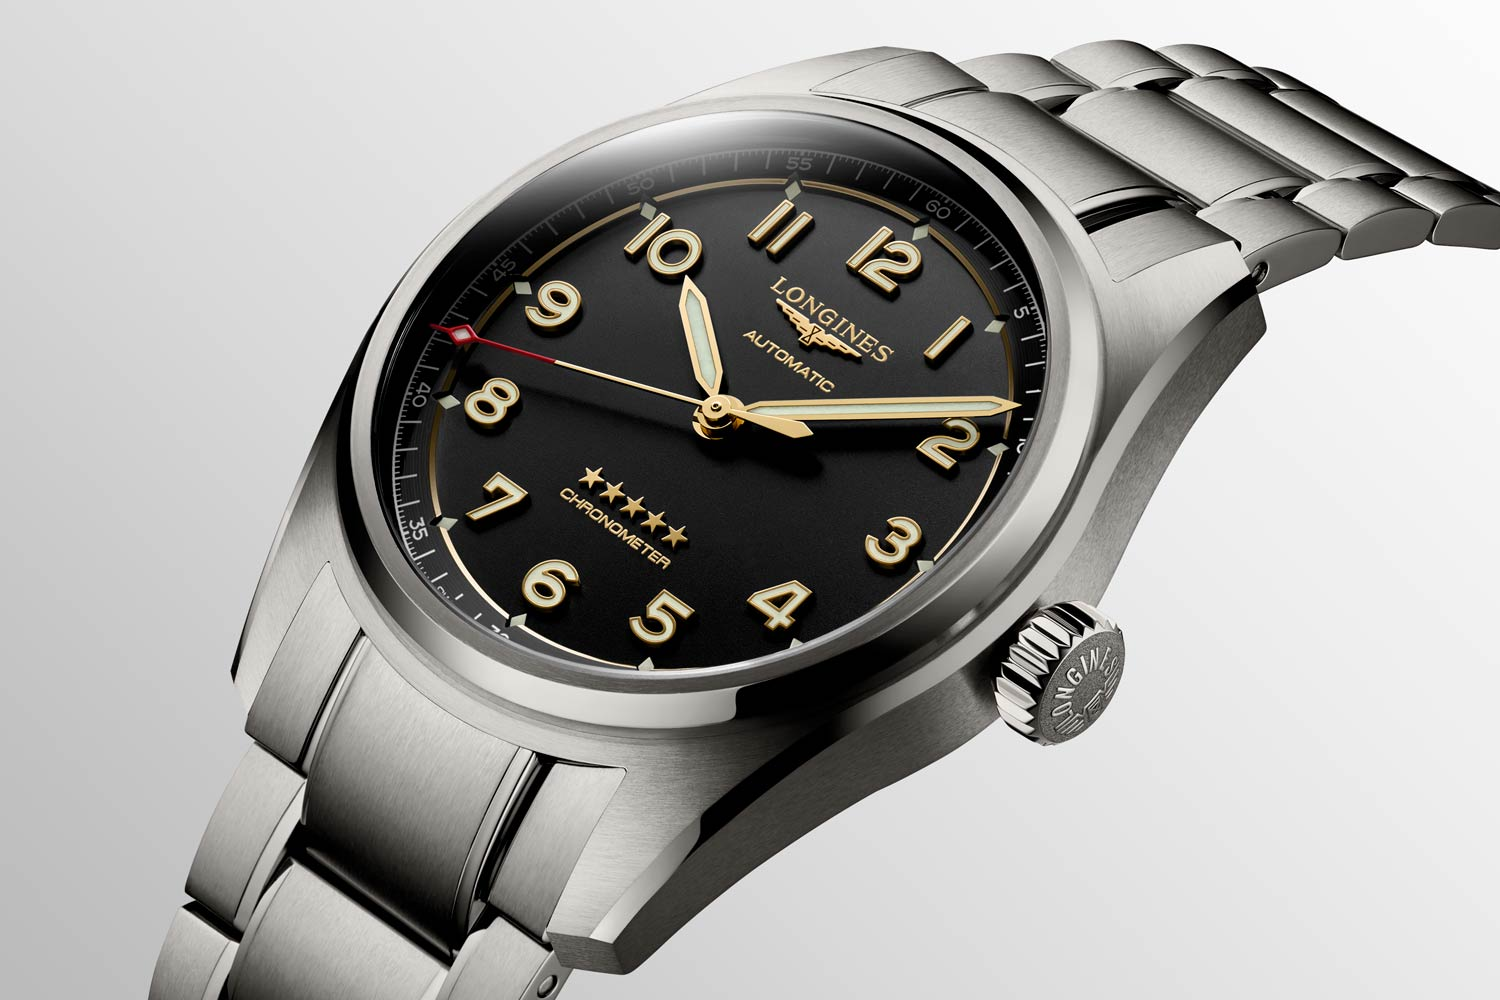 In harmony with the case's satin-polished finish, sandblasted anthracite dial, and satin black flange, the titanium gives this timepiece an updated, contemporary look.